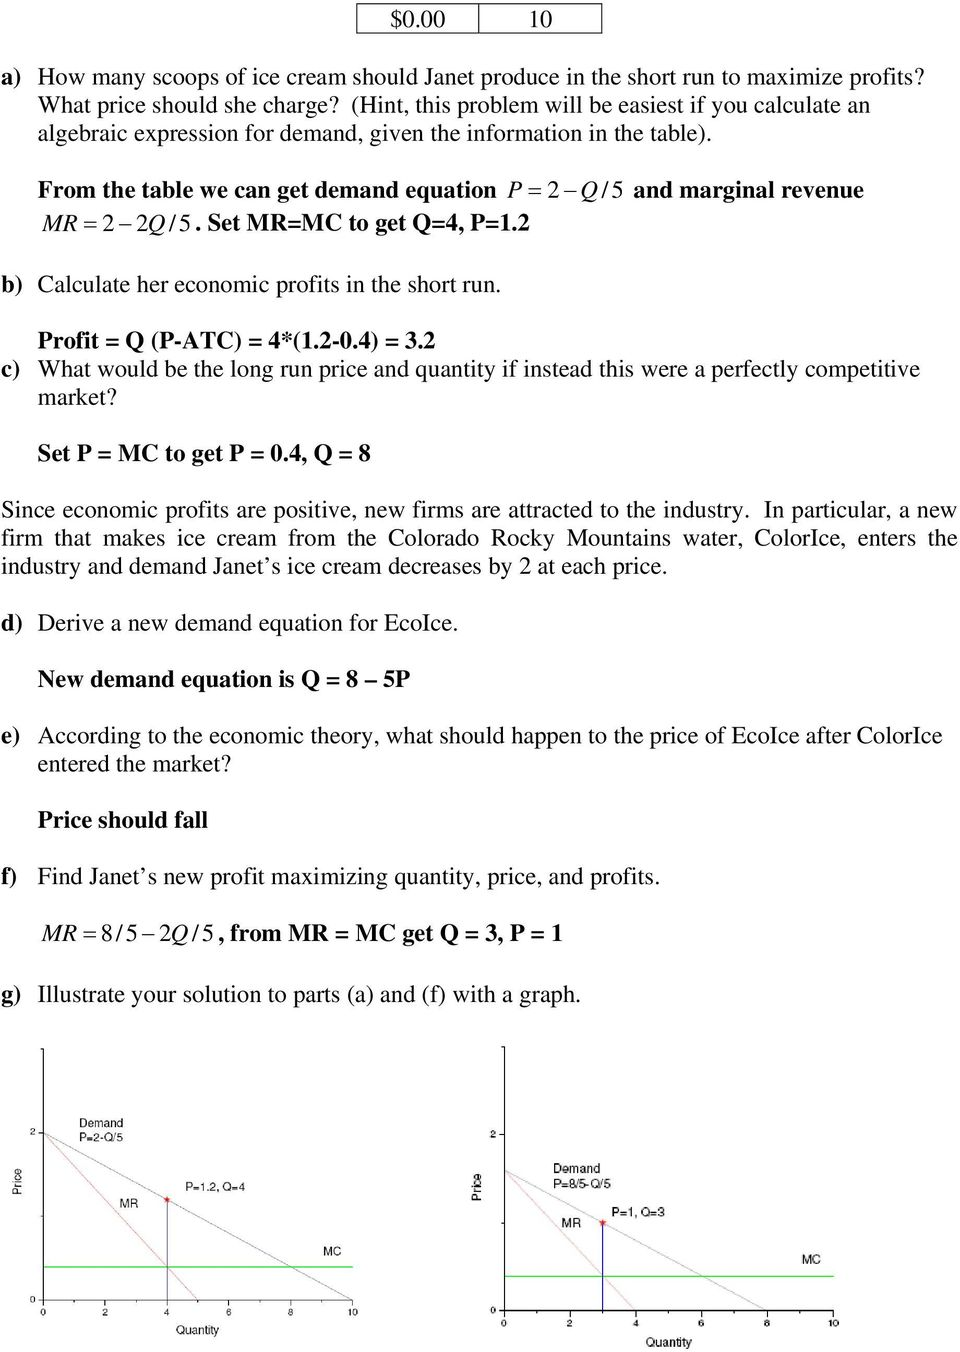 From the table we can get demand equation P = 2 Q / 5 and marginal revenue MR = 2 2Q /5. Set MR=MC to get Q=4, P=1.2 b) Calculate her economic profits in the short run. Profit = Q (P-ATC) = 4*(1.2-0.